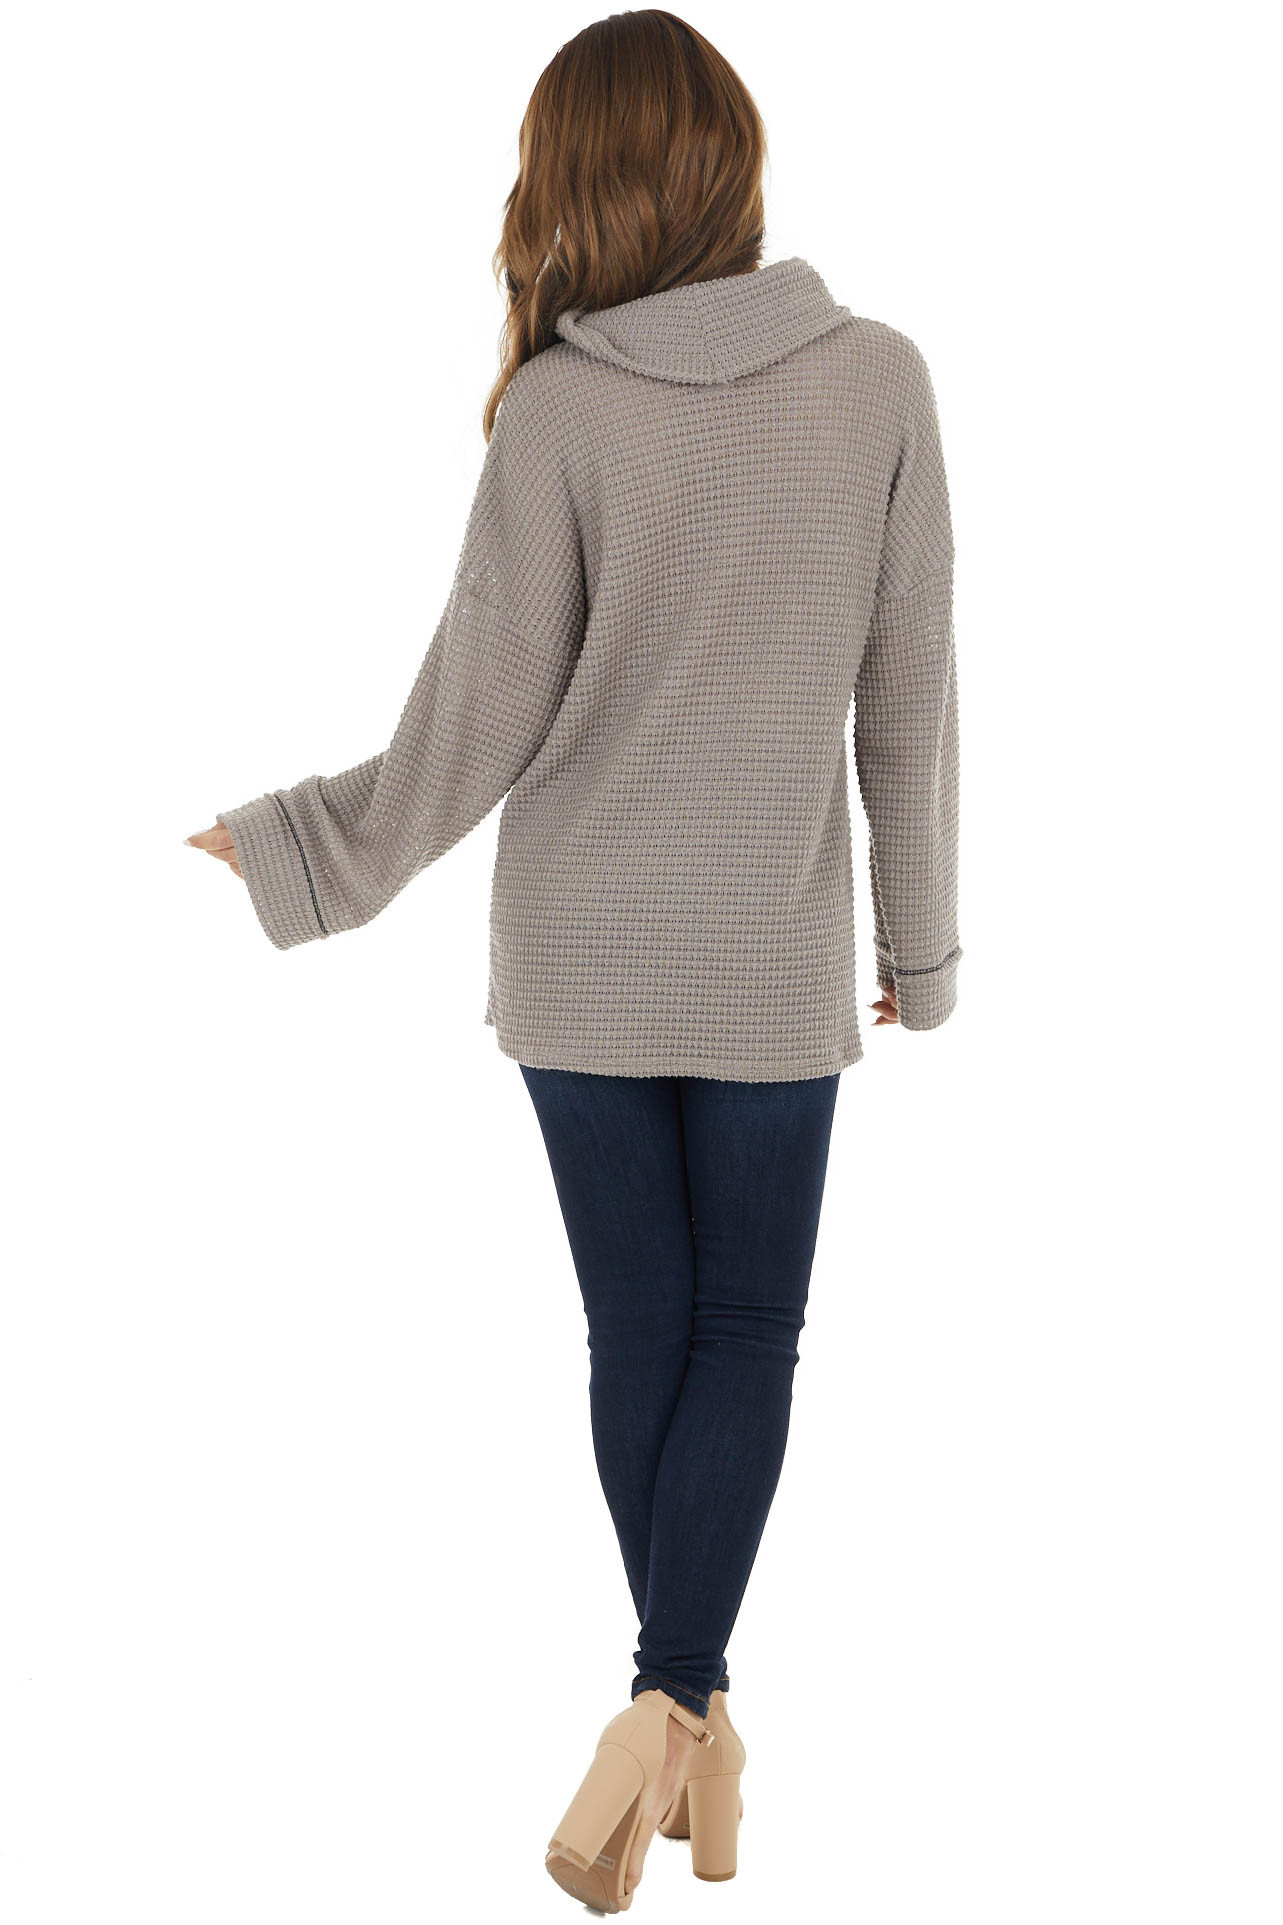 Taupe Waffle Knit Long Sleeve Top with Cowl Neckline